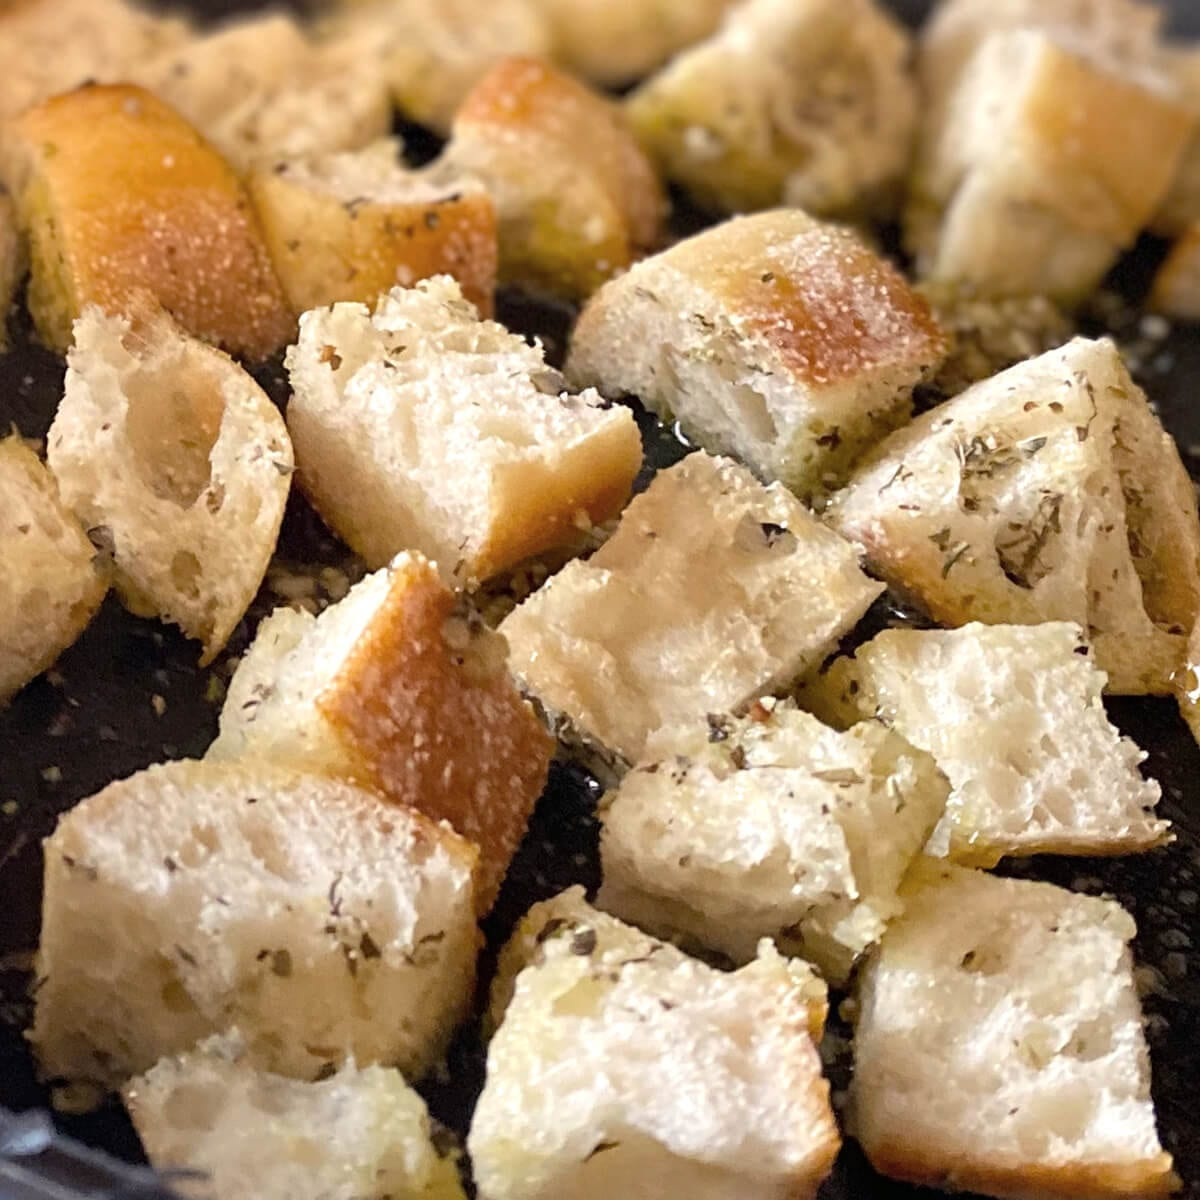 How to Make Homemade Croutons: A Tasty, Easy Recipe